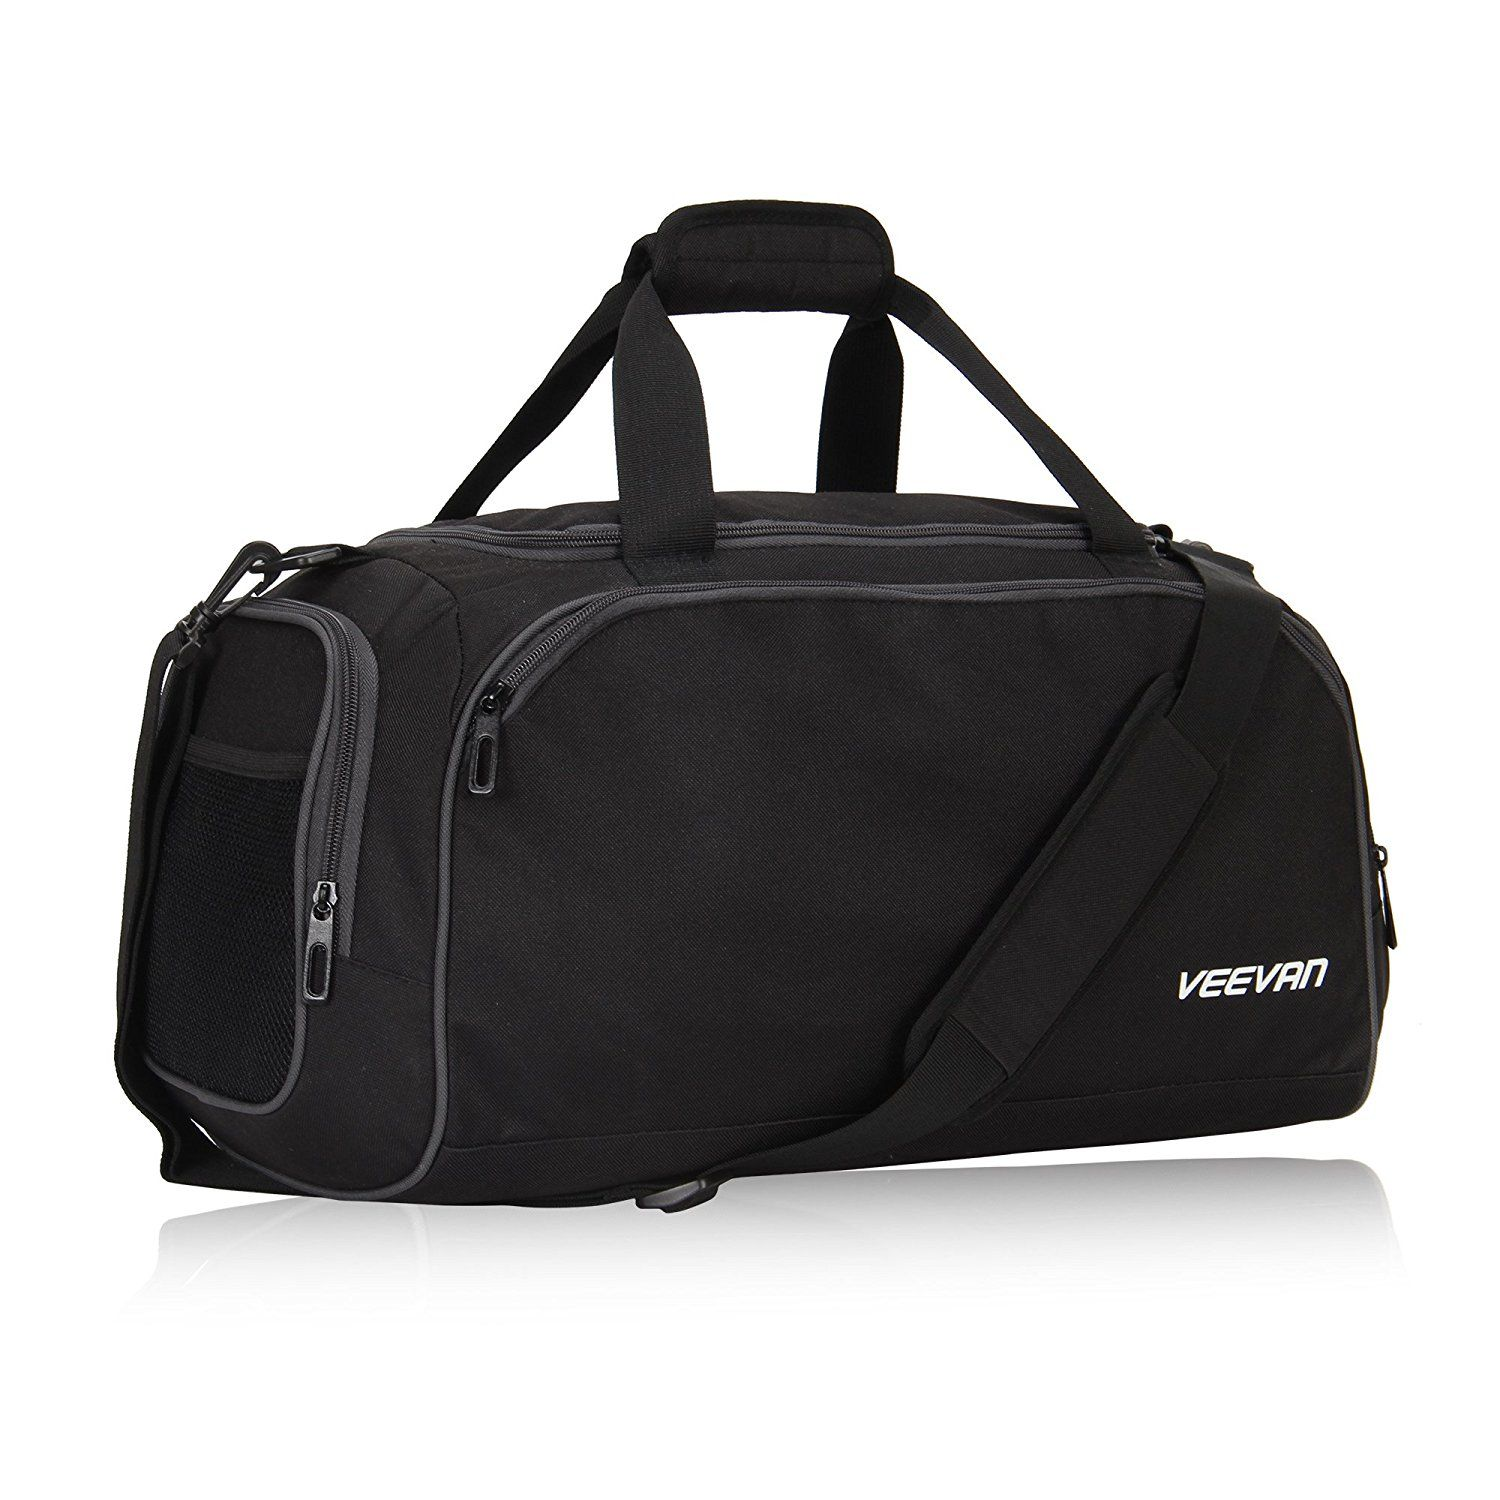 b3ae59db00ec Veevanpro 18 inch Small Gym Bag Travel Sports Duffel Bag Carry on     Details can be found by clicking on the image. (This is an Amazon Affiliate  link and I ...